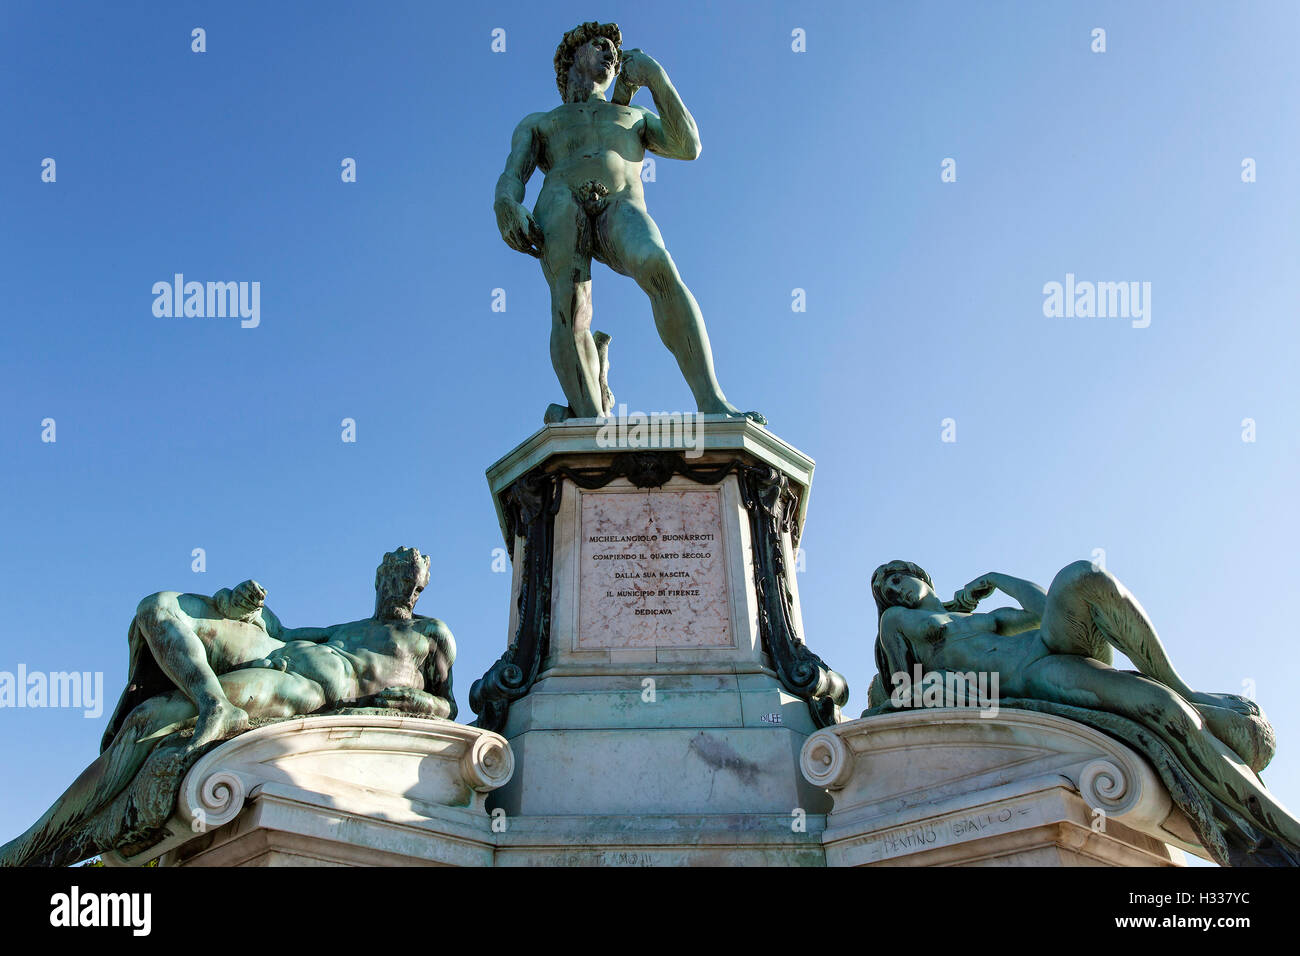 Copie de la Statue de David, Piazzale Michelangelo, Florence, Toscane, Italie Photo Stock